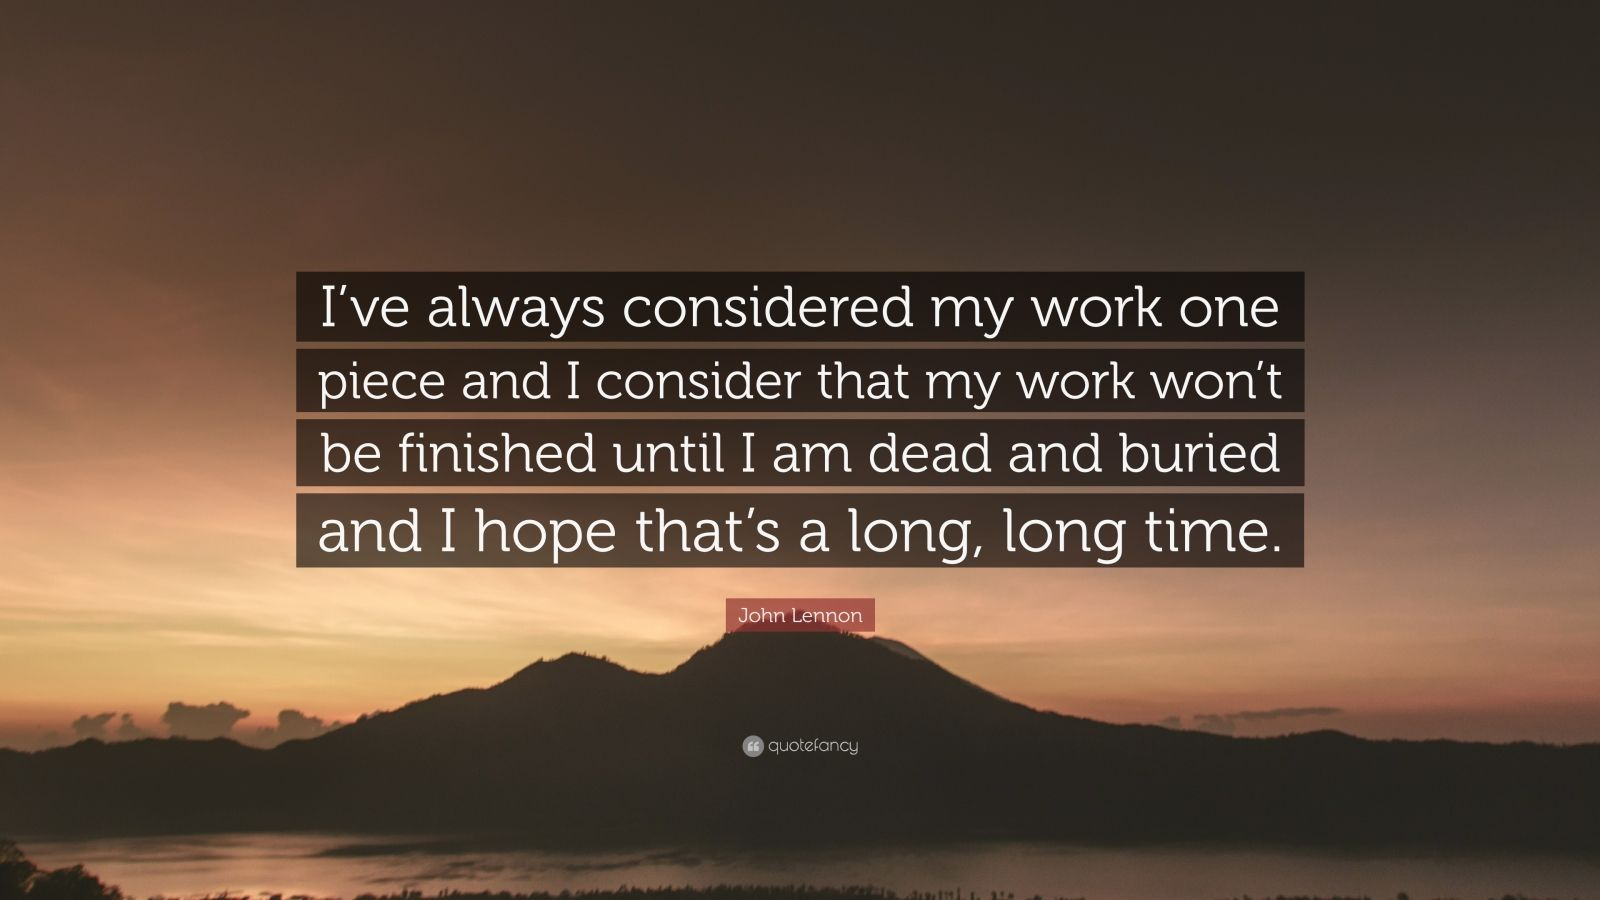 "John Lennon Quote: ""I've always considered my work one piece and I consider that my work won't be finished until I am dead and buried and I hope that's a long, long time."""